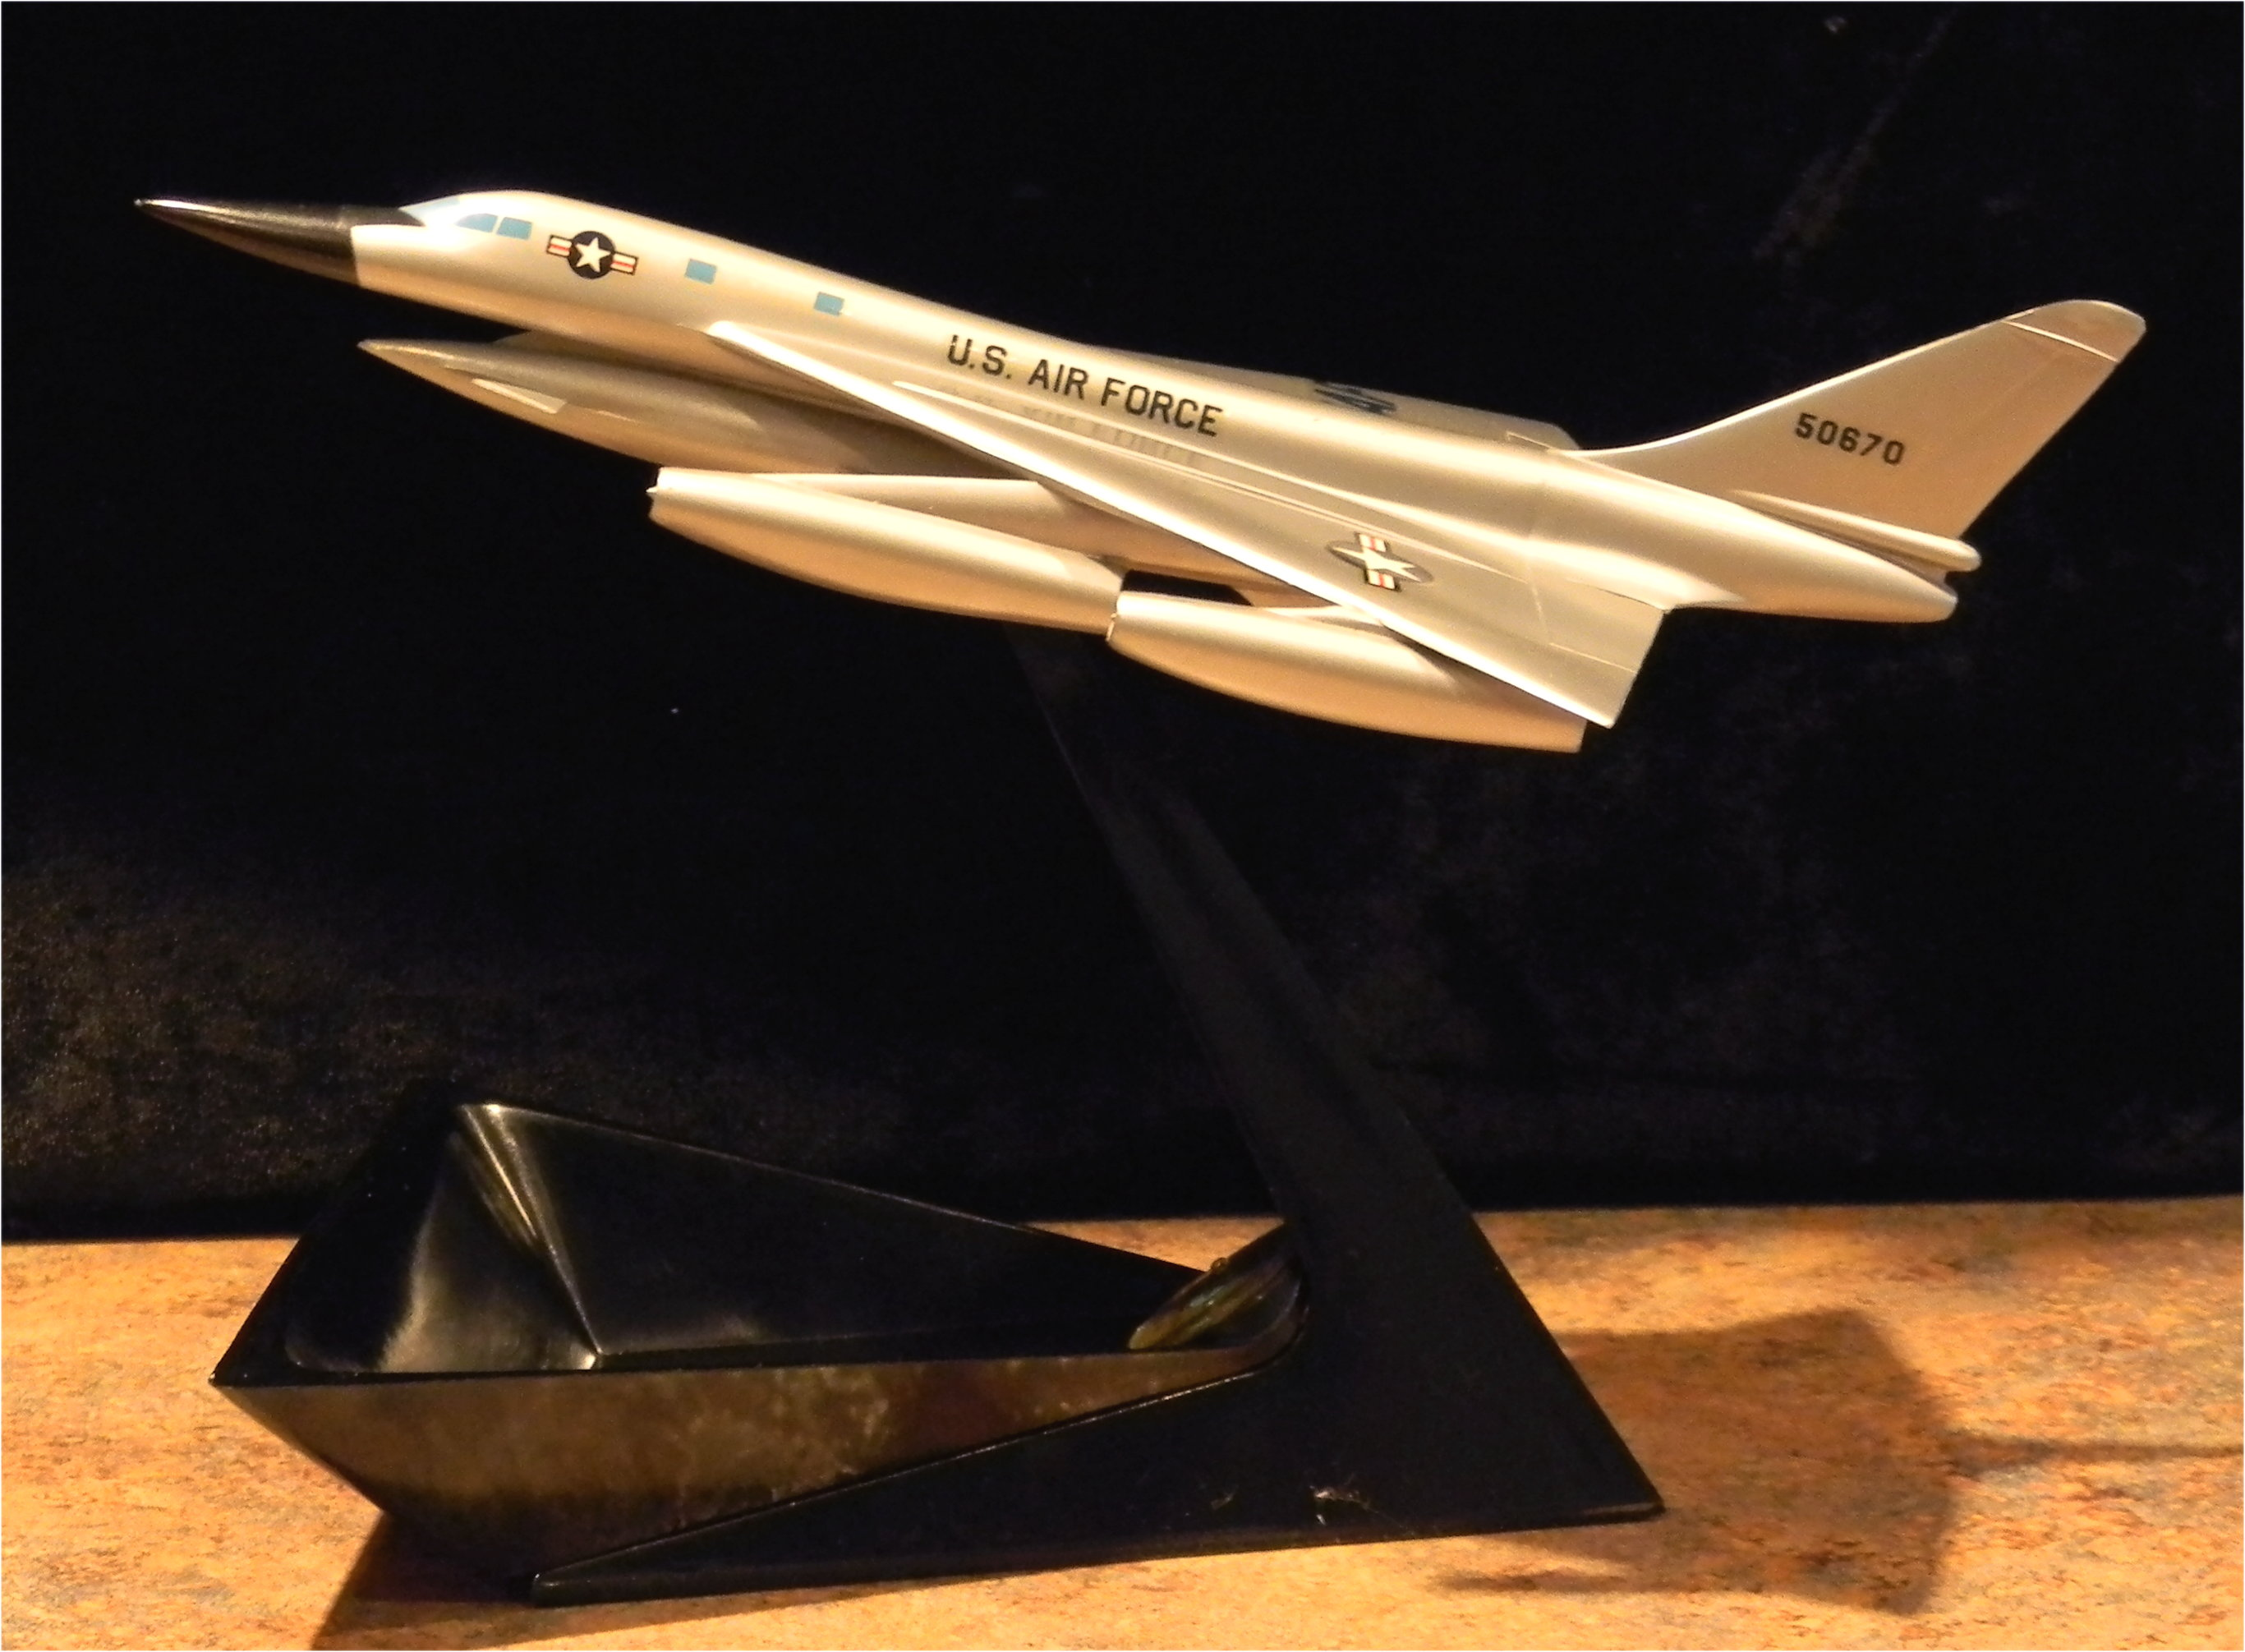 Convair B-58 with ashtray base